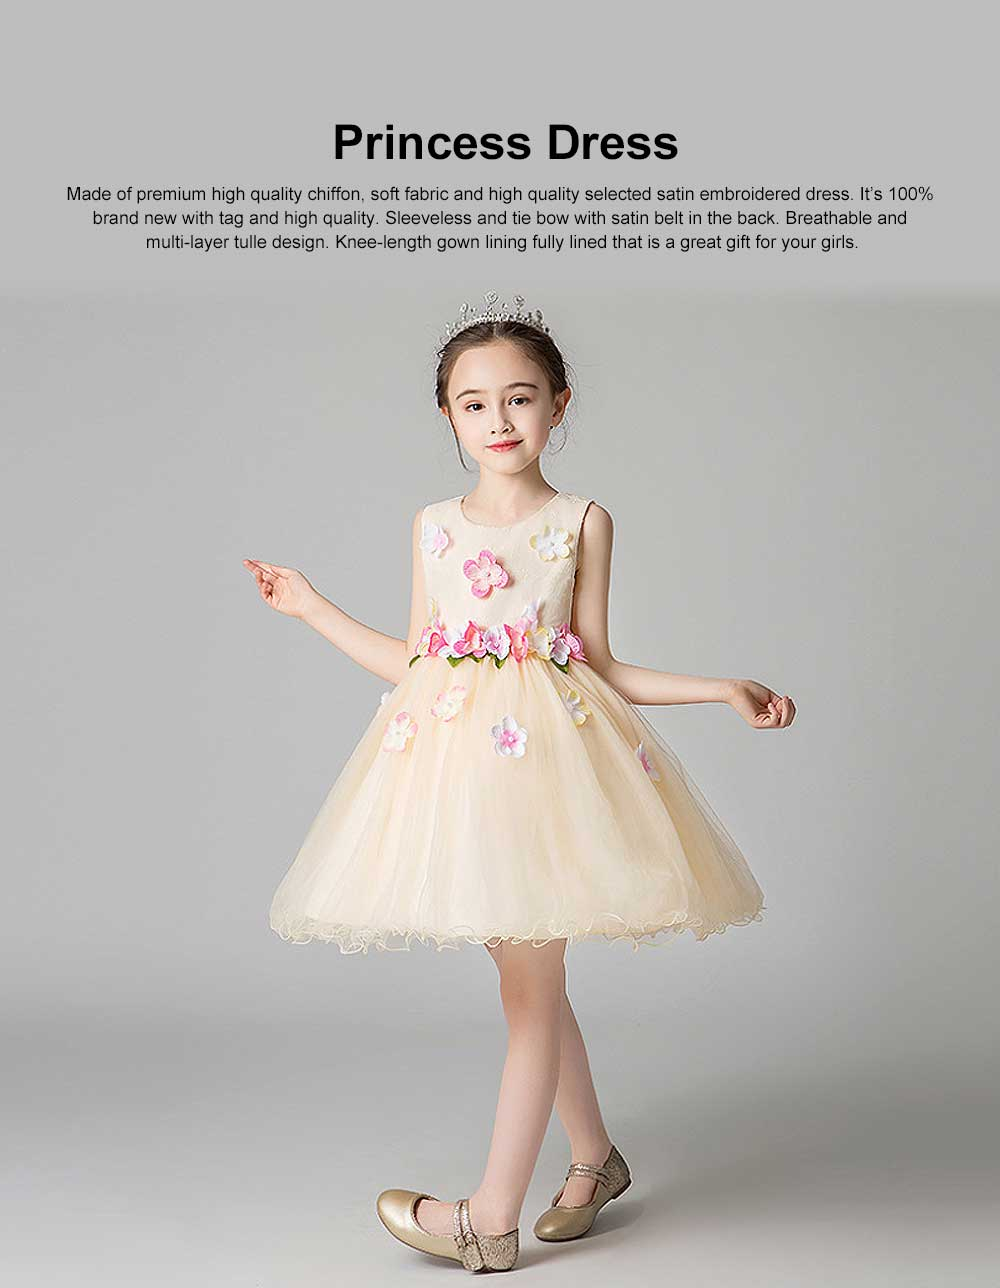 3D Flower Girls Princess Dress, Sleeveless Tulle Birthday Party Dress Best Gifts for Girl 0